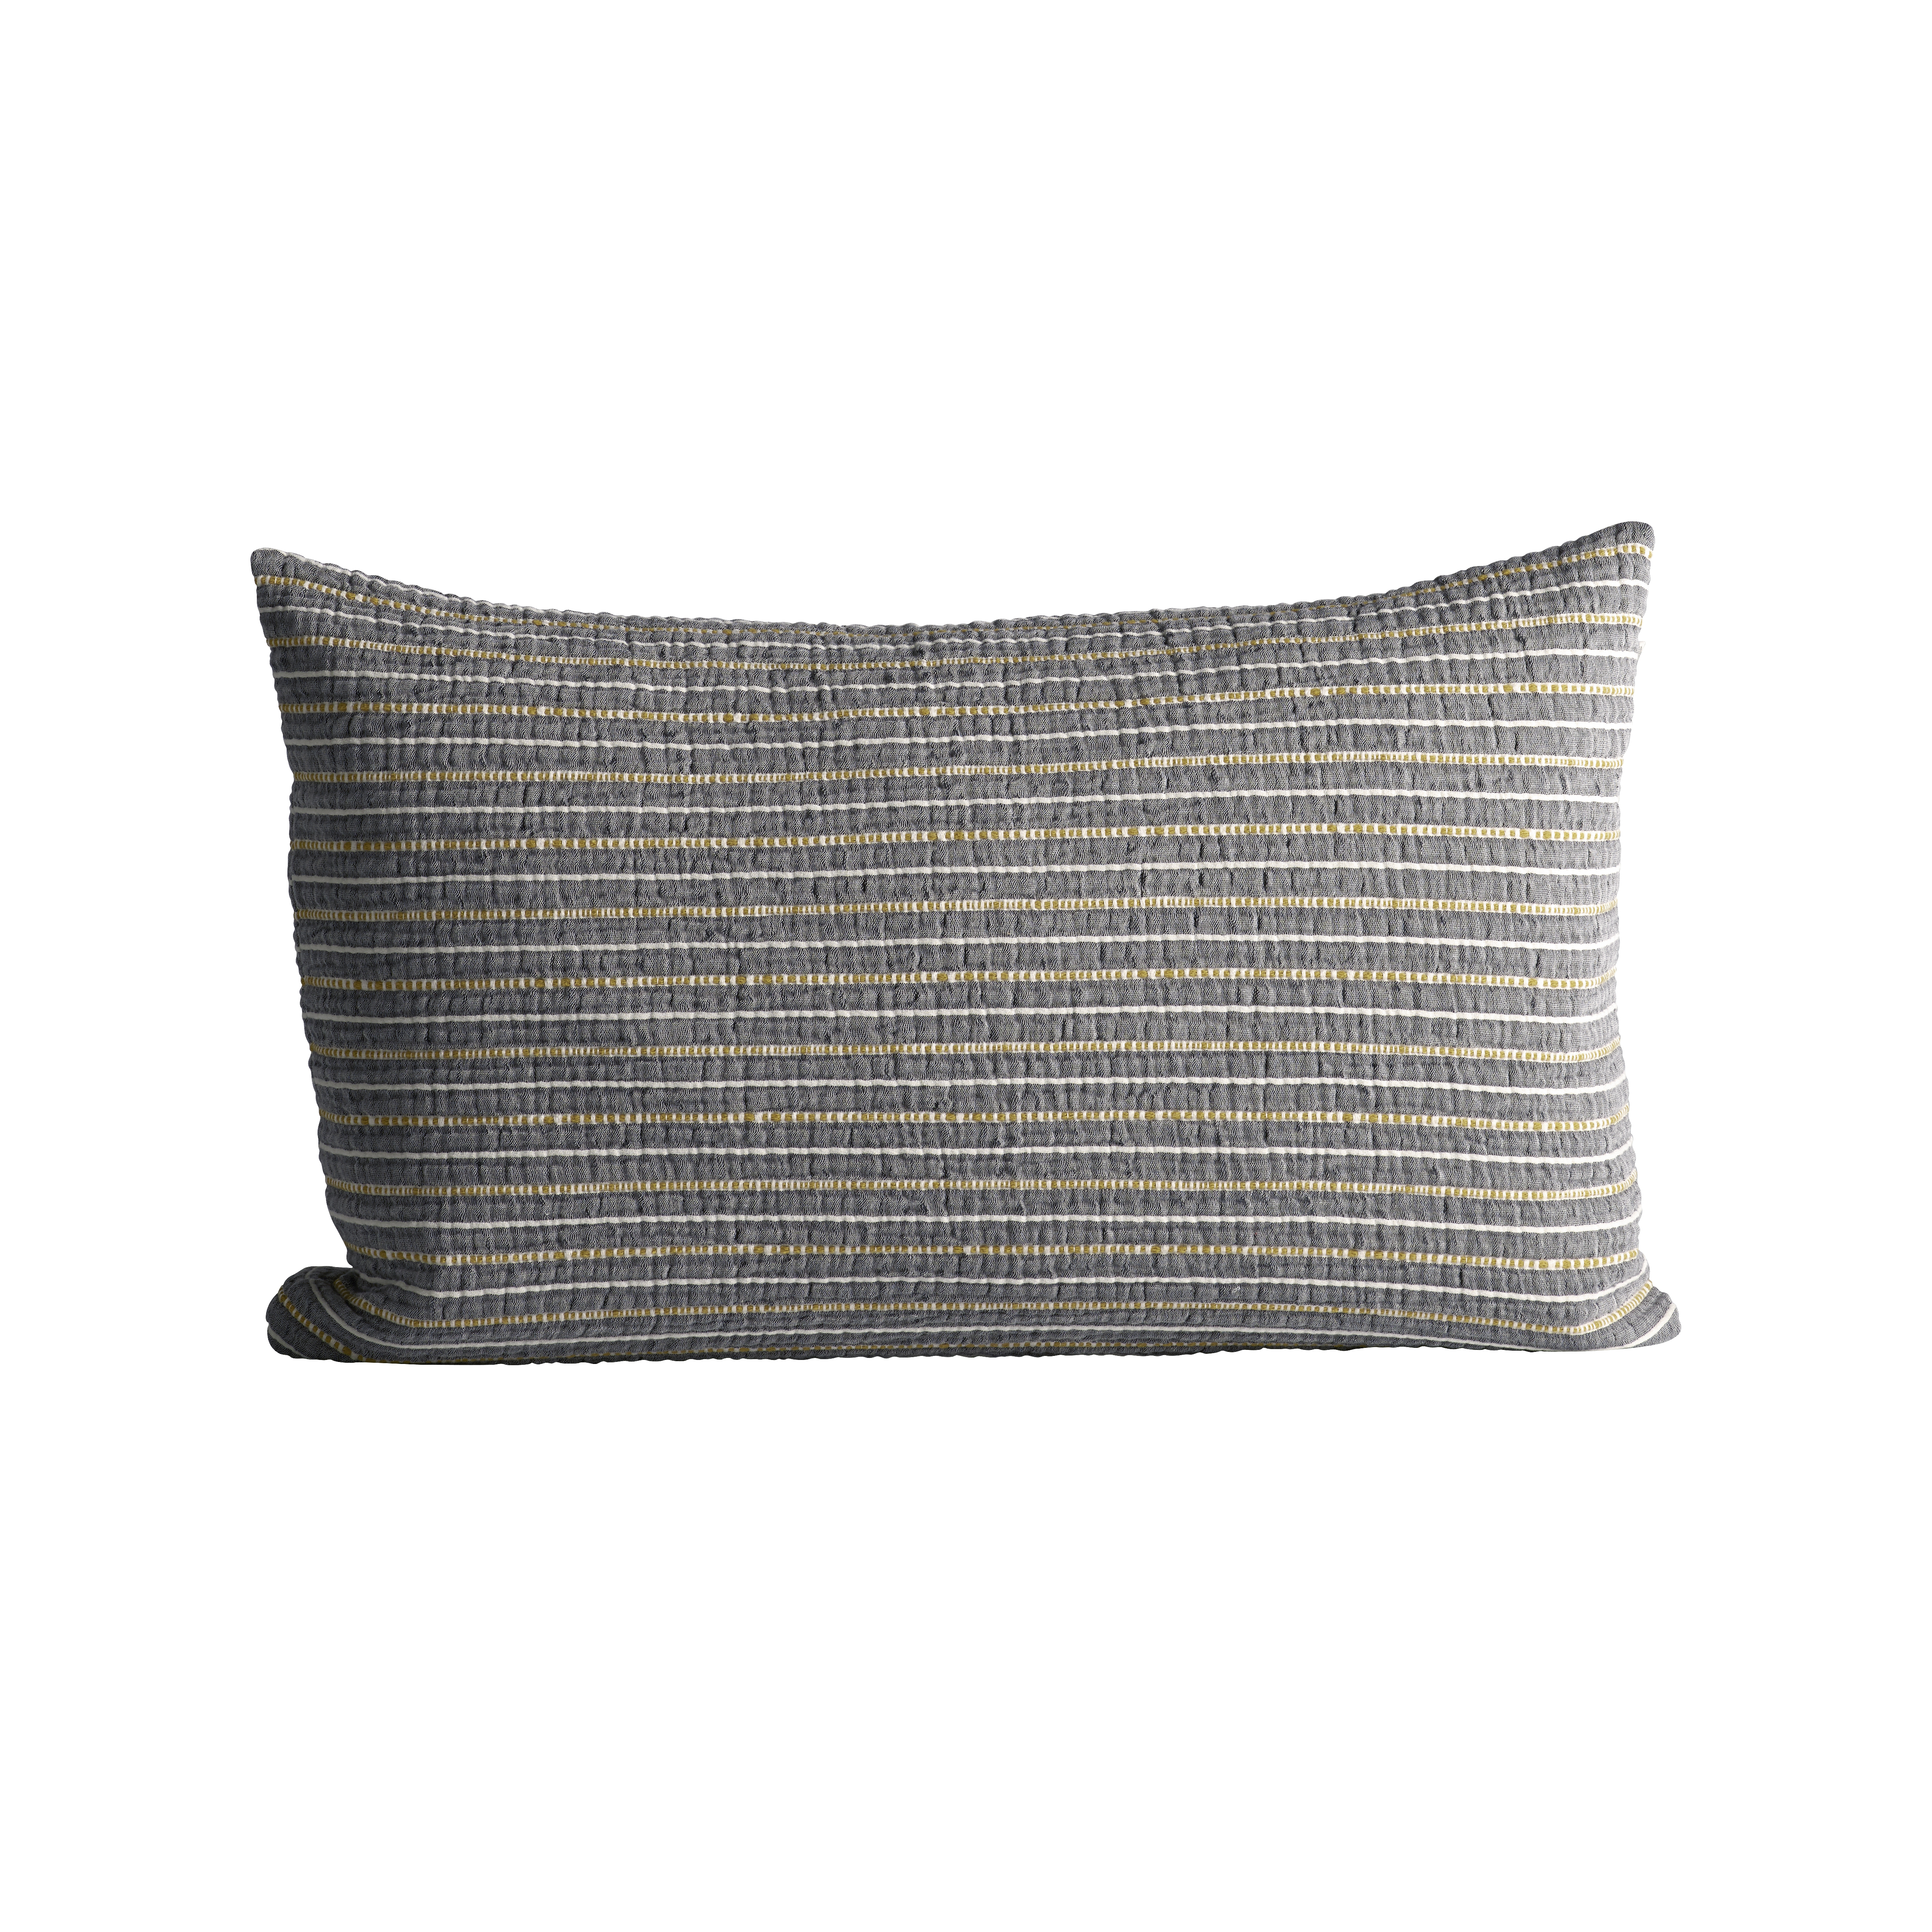 Cushion Cover In Fine Woven And Striped Texture 40 X 60